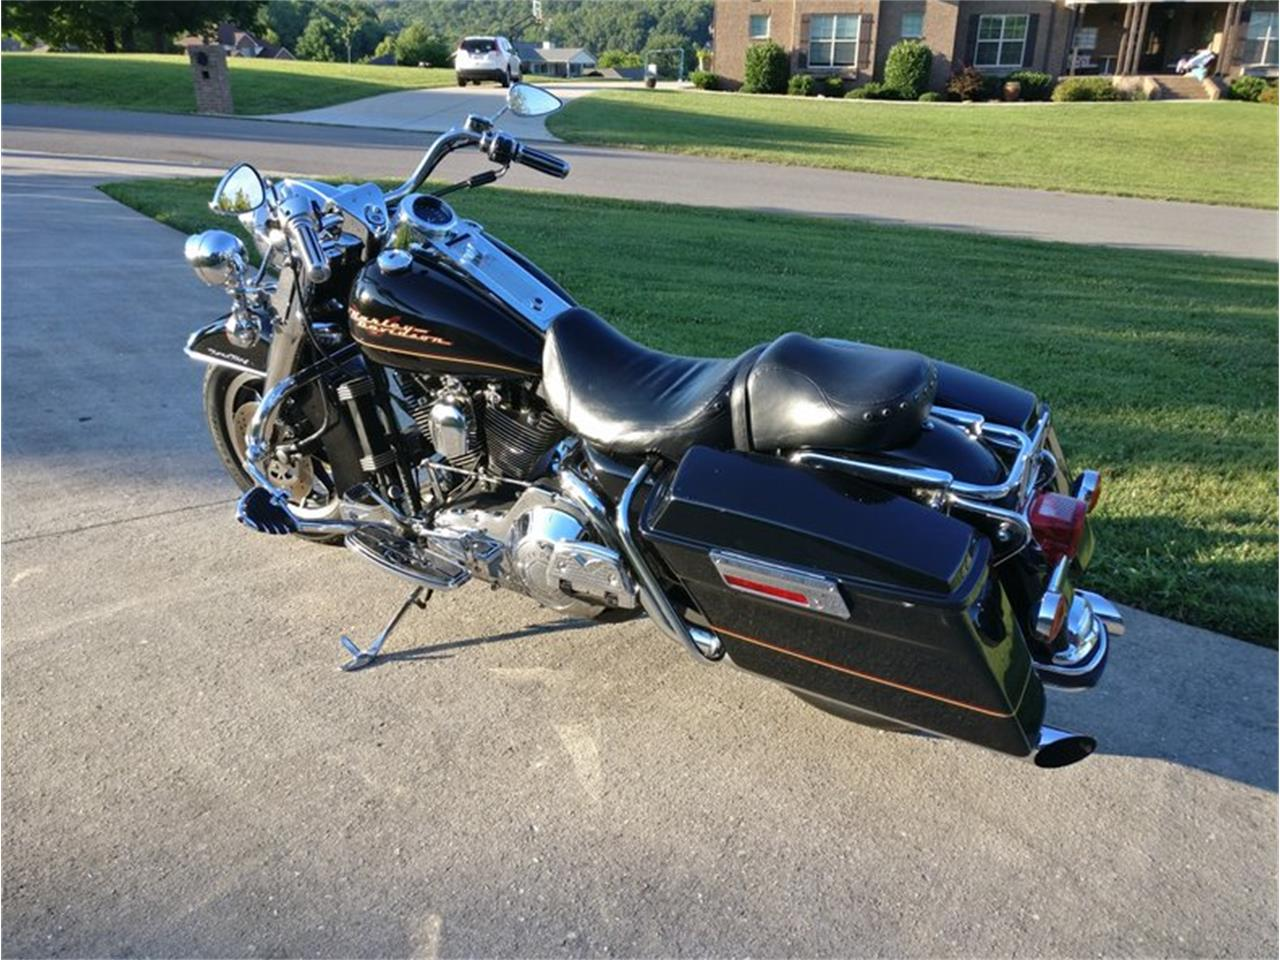 1998 Harley-Davidson Road King for sale in Cookeville, TN – photo 8